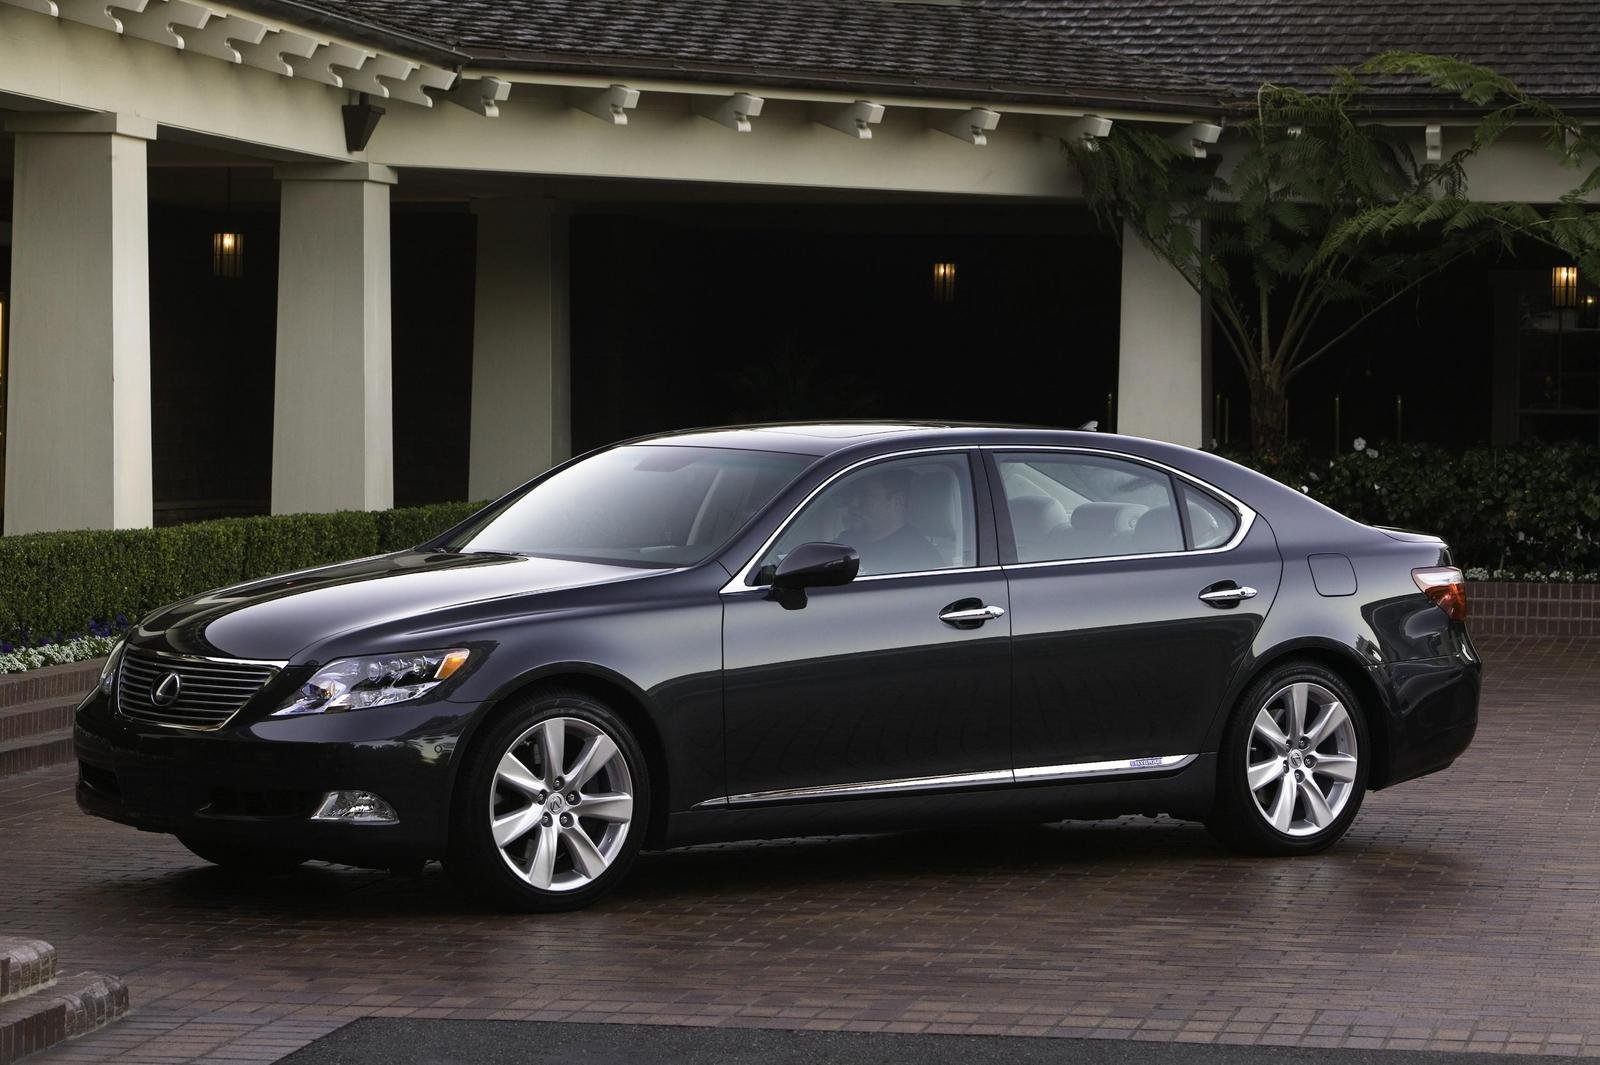 2008 lexus ls 600h l picture 164946 car review top speed. Black Bedroom Furniture Sets. Home Design Ideas